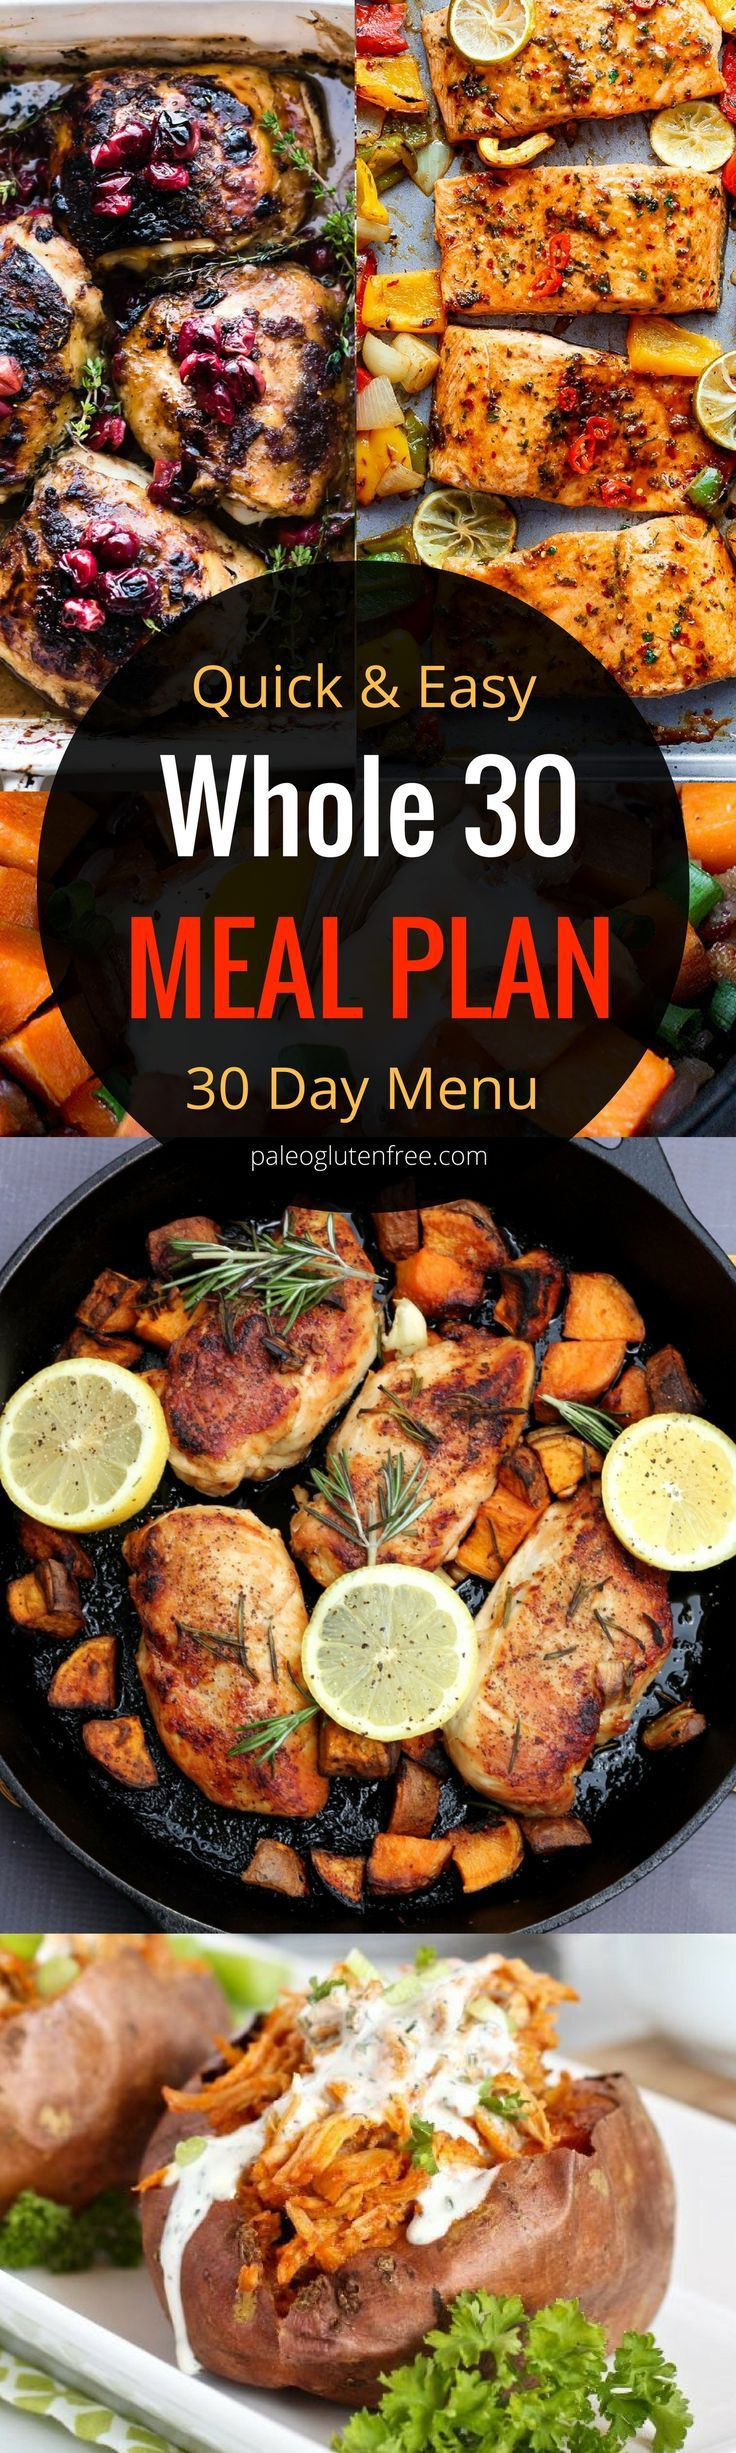 Best 25+ Whole 30 meal plan ideas on Pinterest | Whole30 diet meal ...